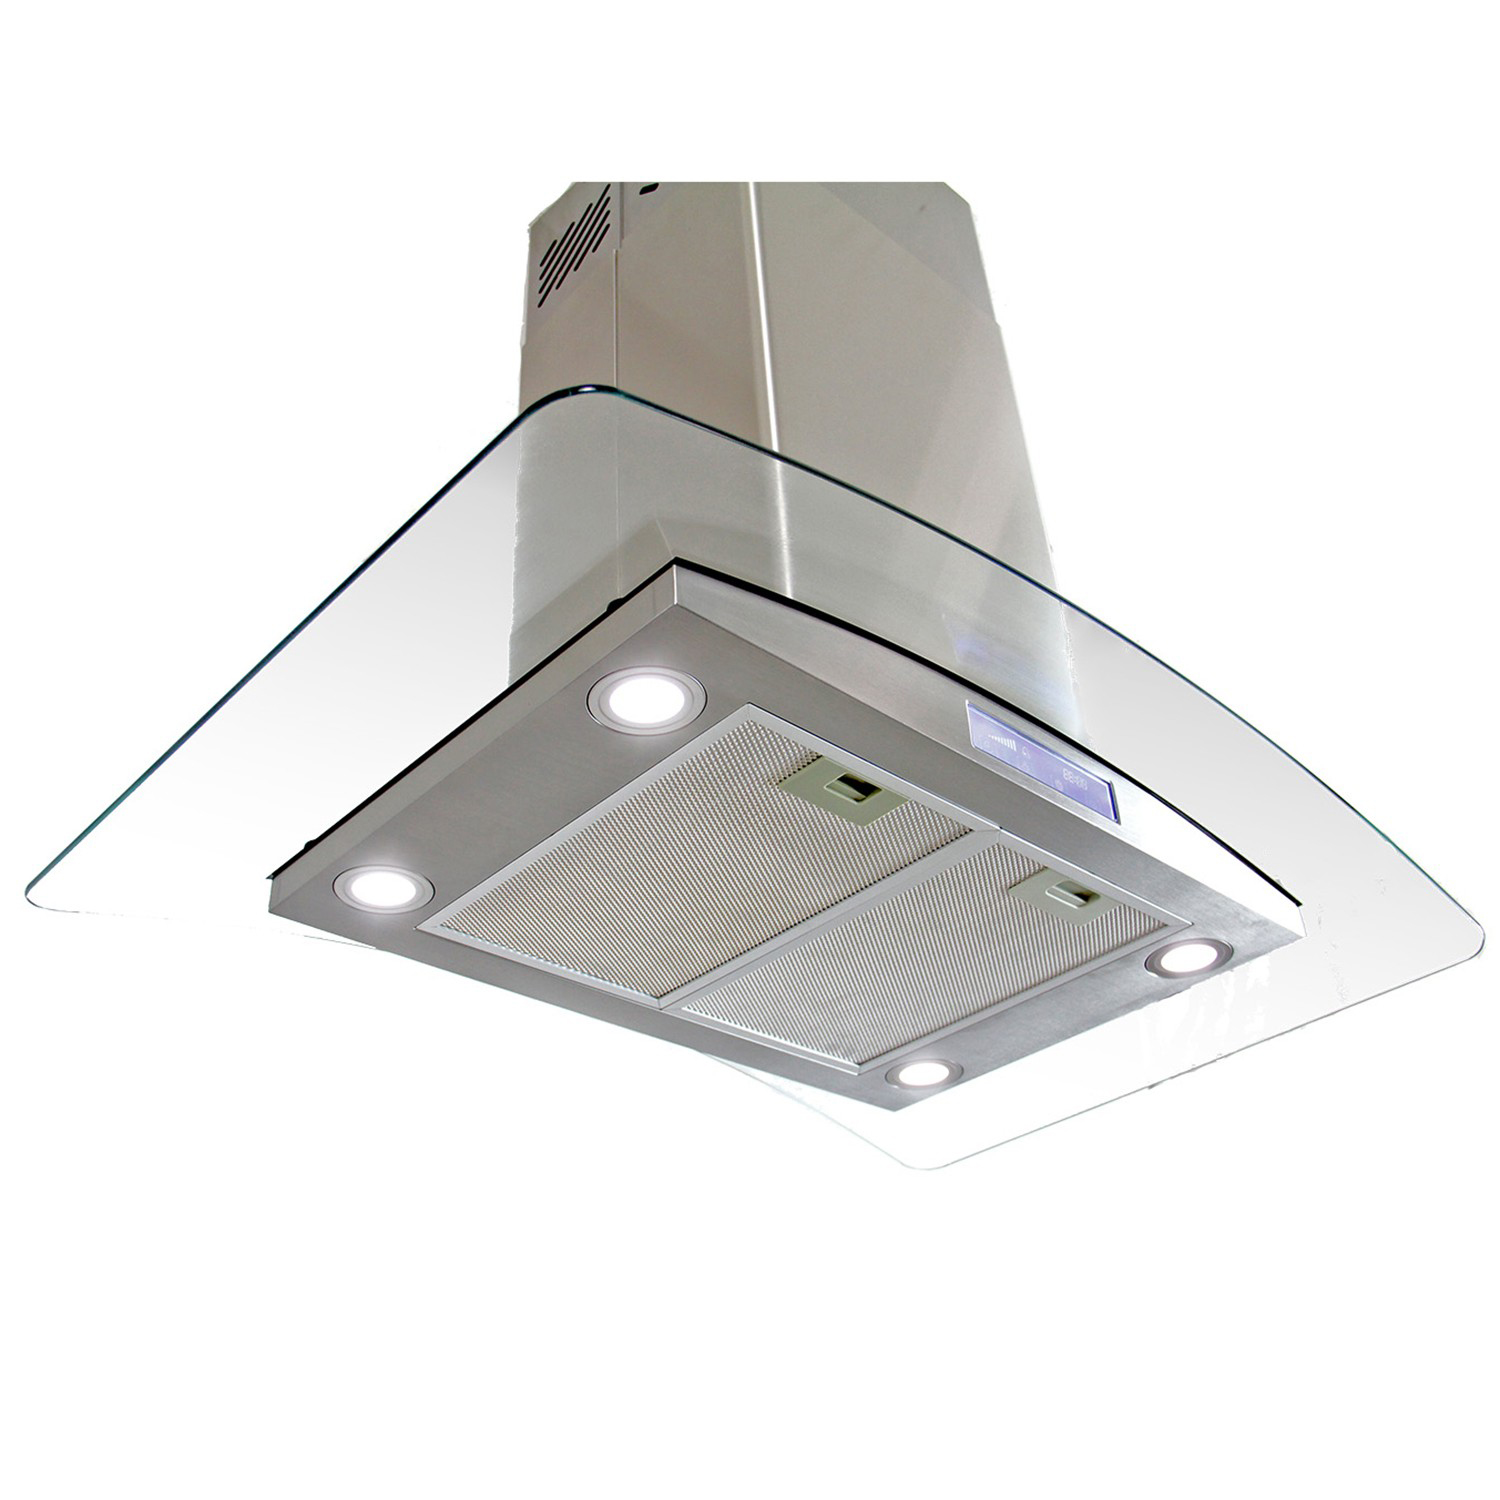 bath4all akdy ak 668is2 36 36 island mount range hood 870 cfm